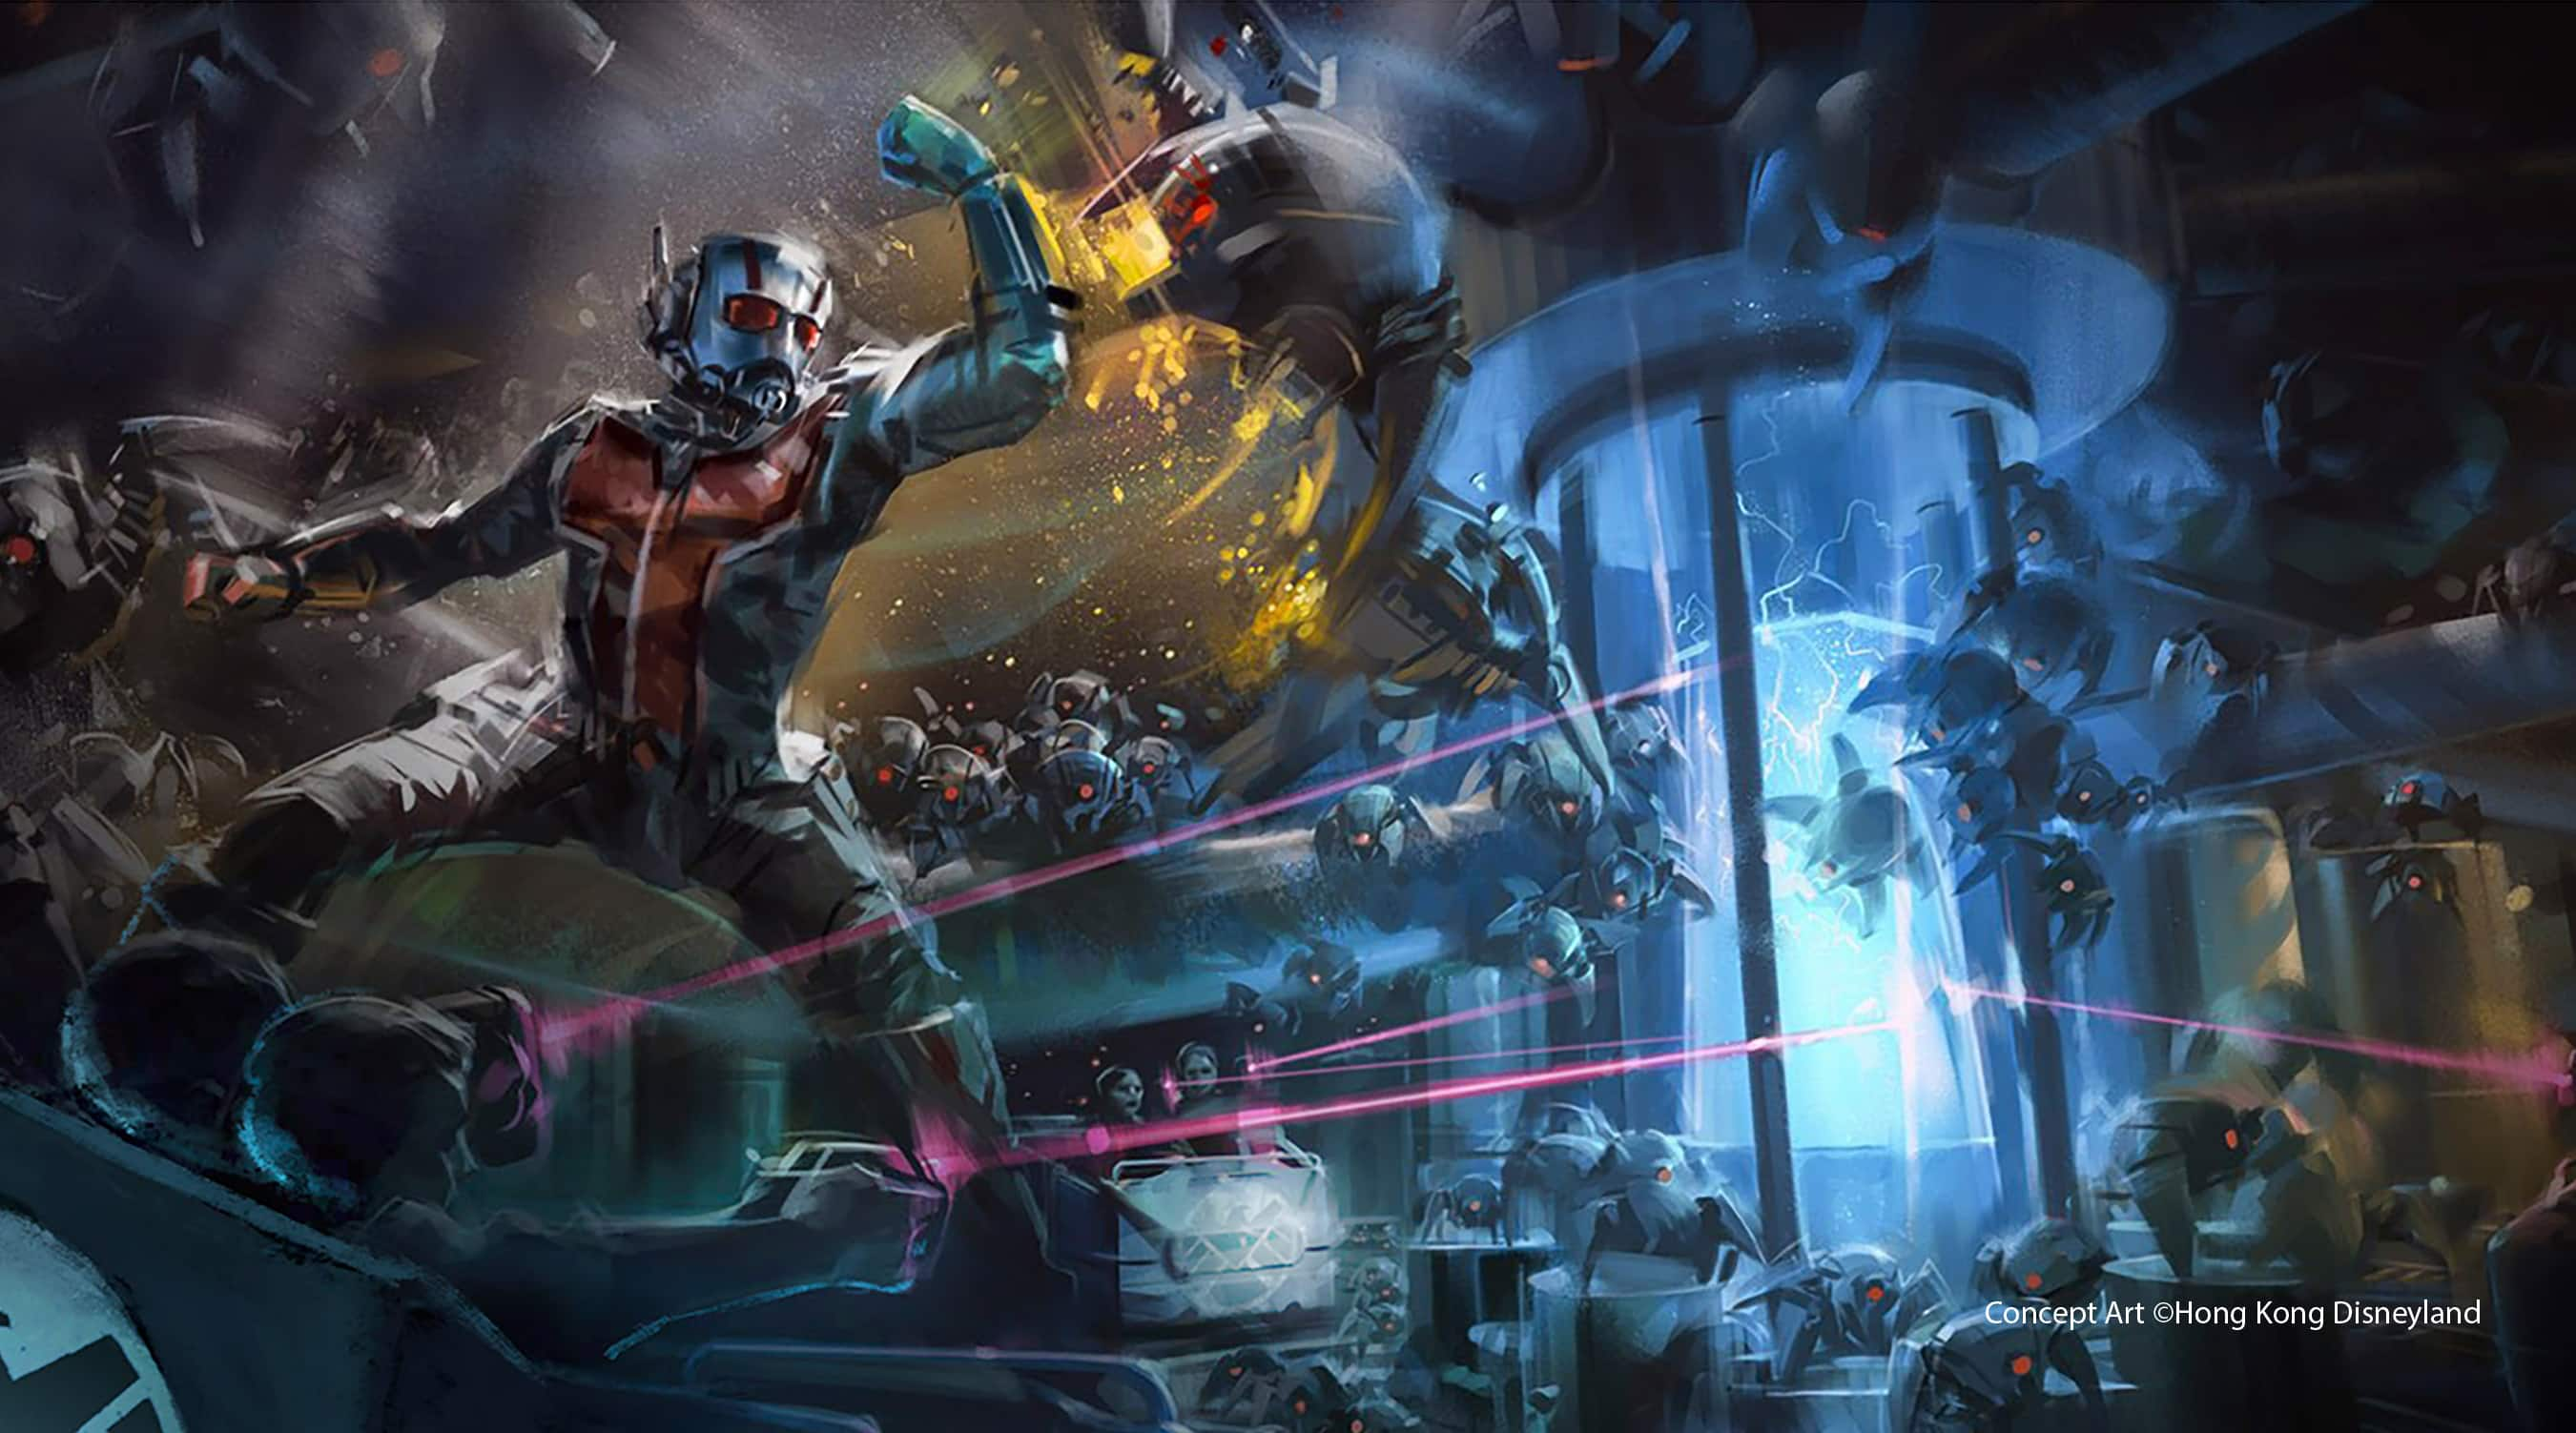 Disney unveils a first-ever Ant-Man ride